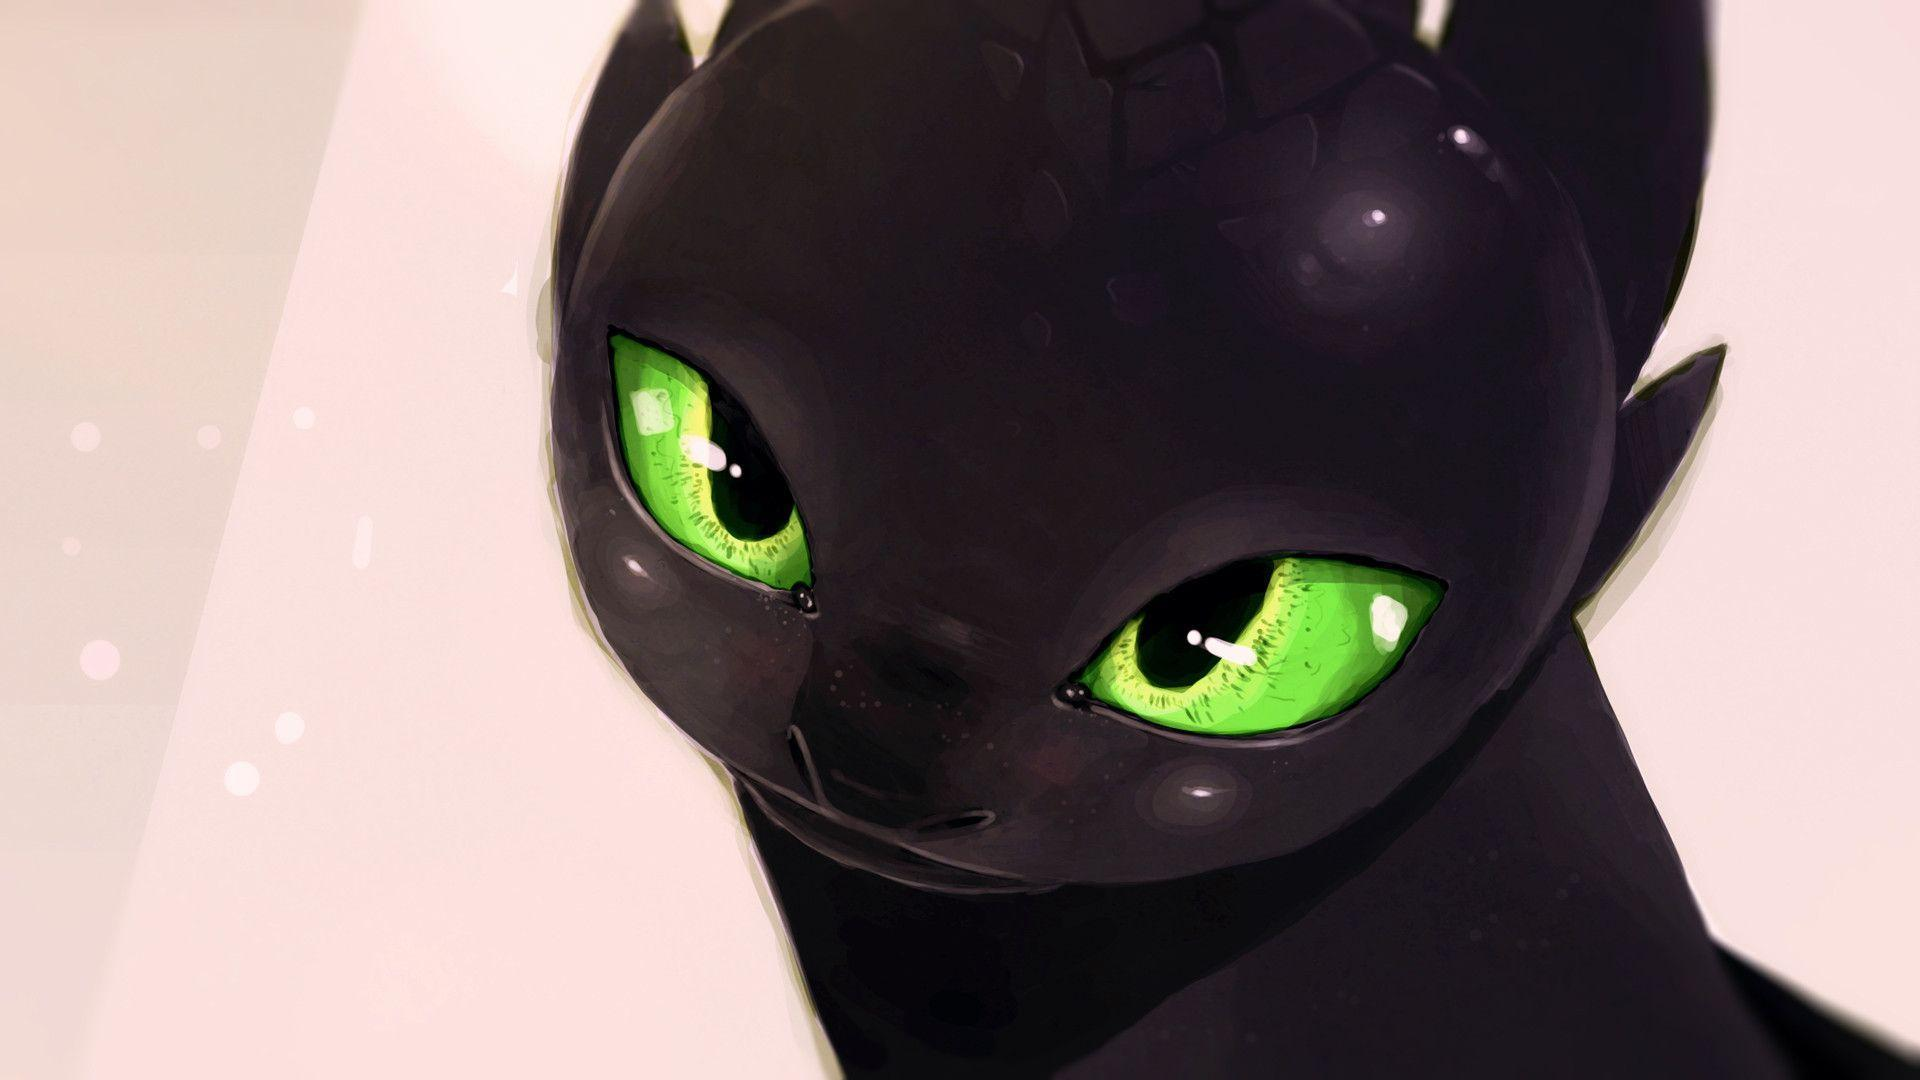 Cute Toothless Desktop Wallpaper Toothless The Dragon Wallpapers Wallpaper Cave